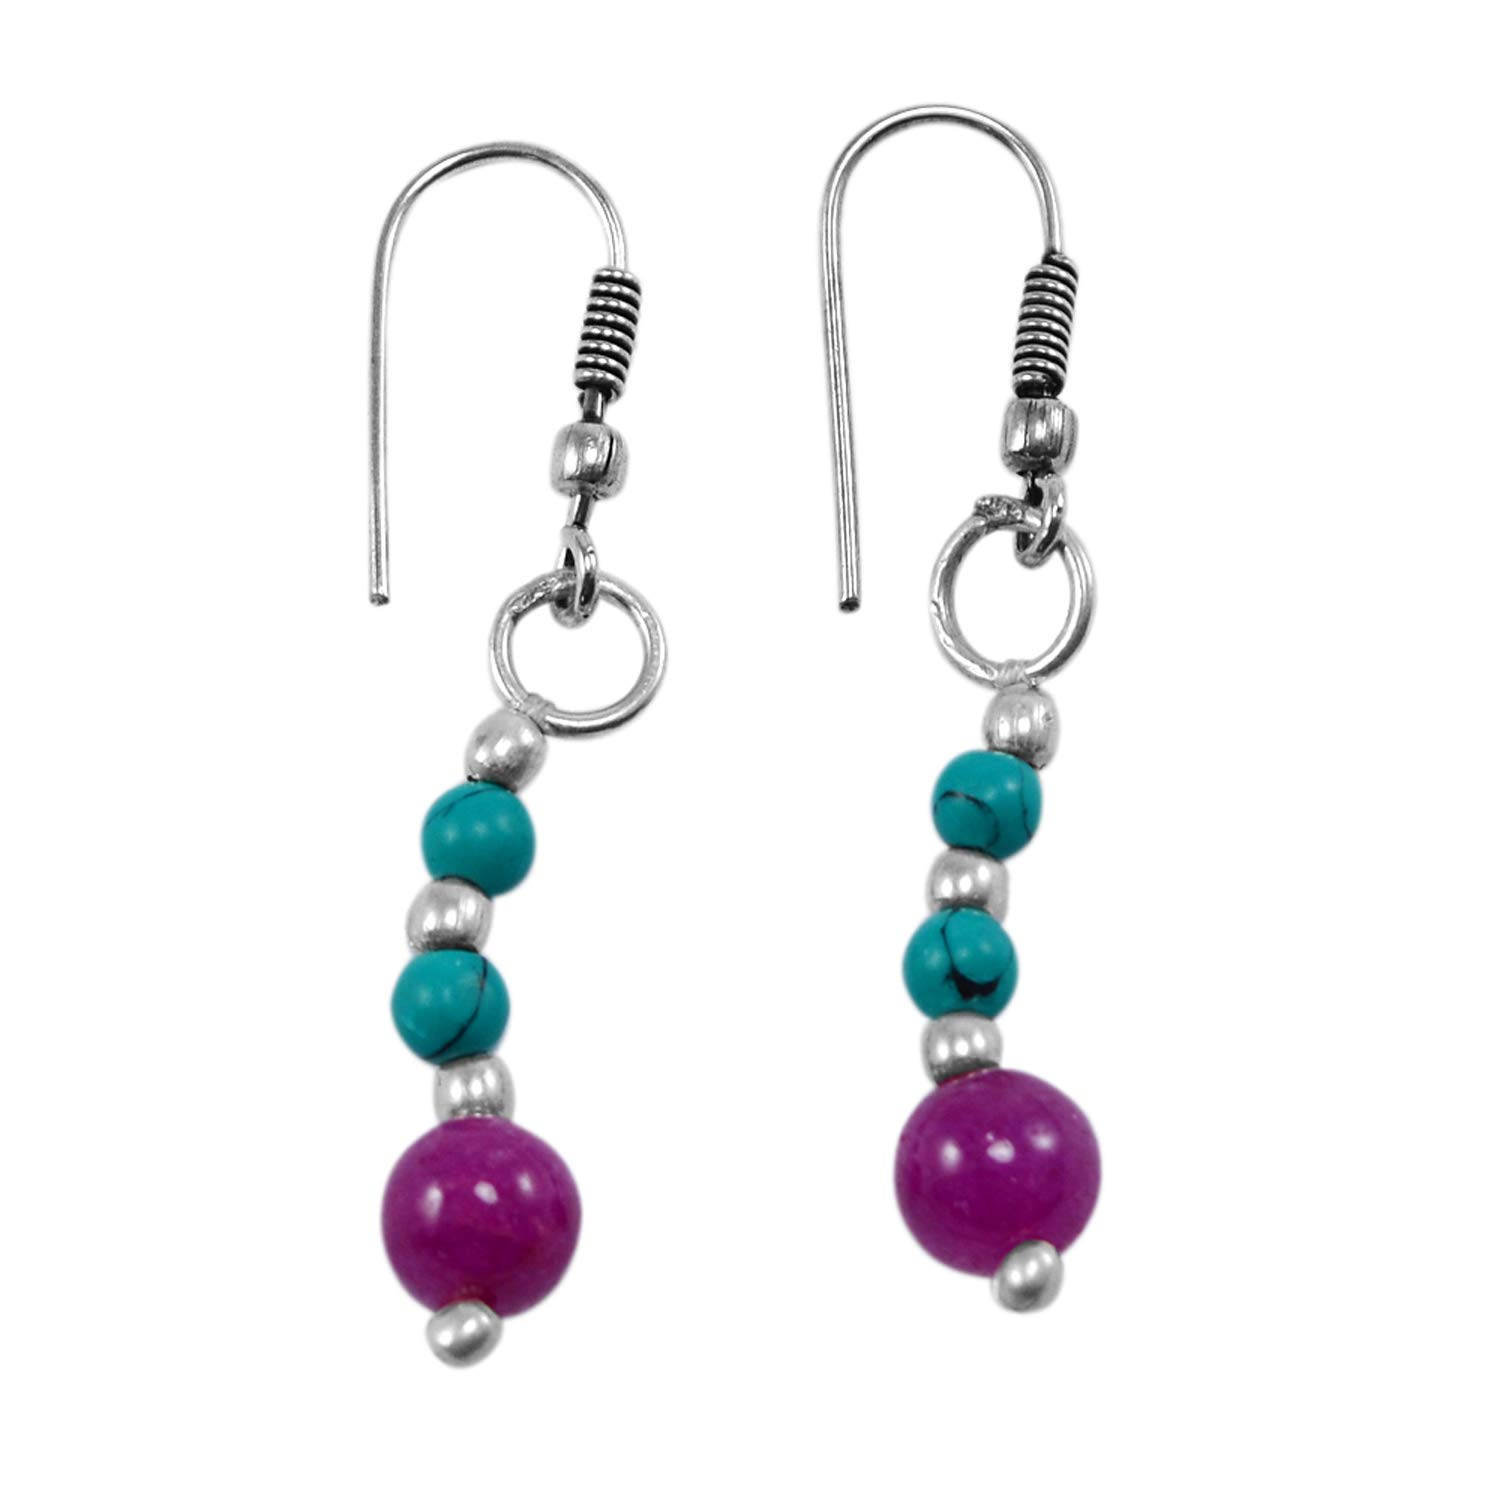 Silvestoo Jaipur Jewelry Girls 925 Silver Plated Round Pink Jade /& Turquoise Dangle Earring PG-130930